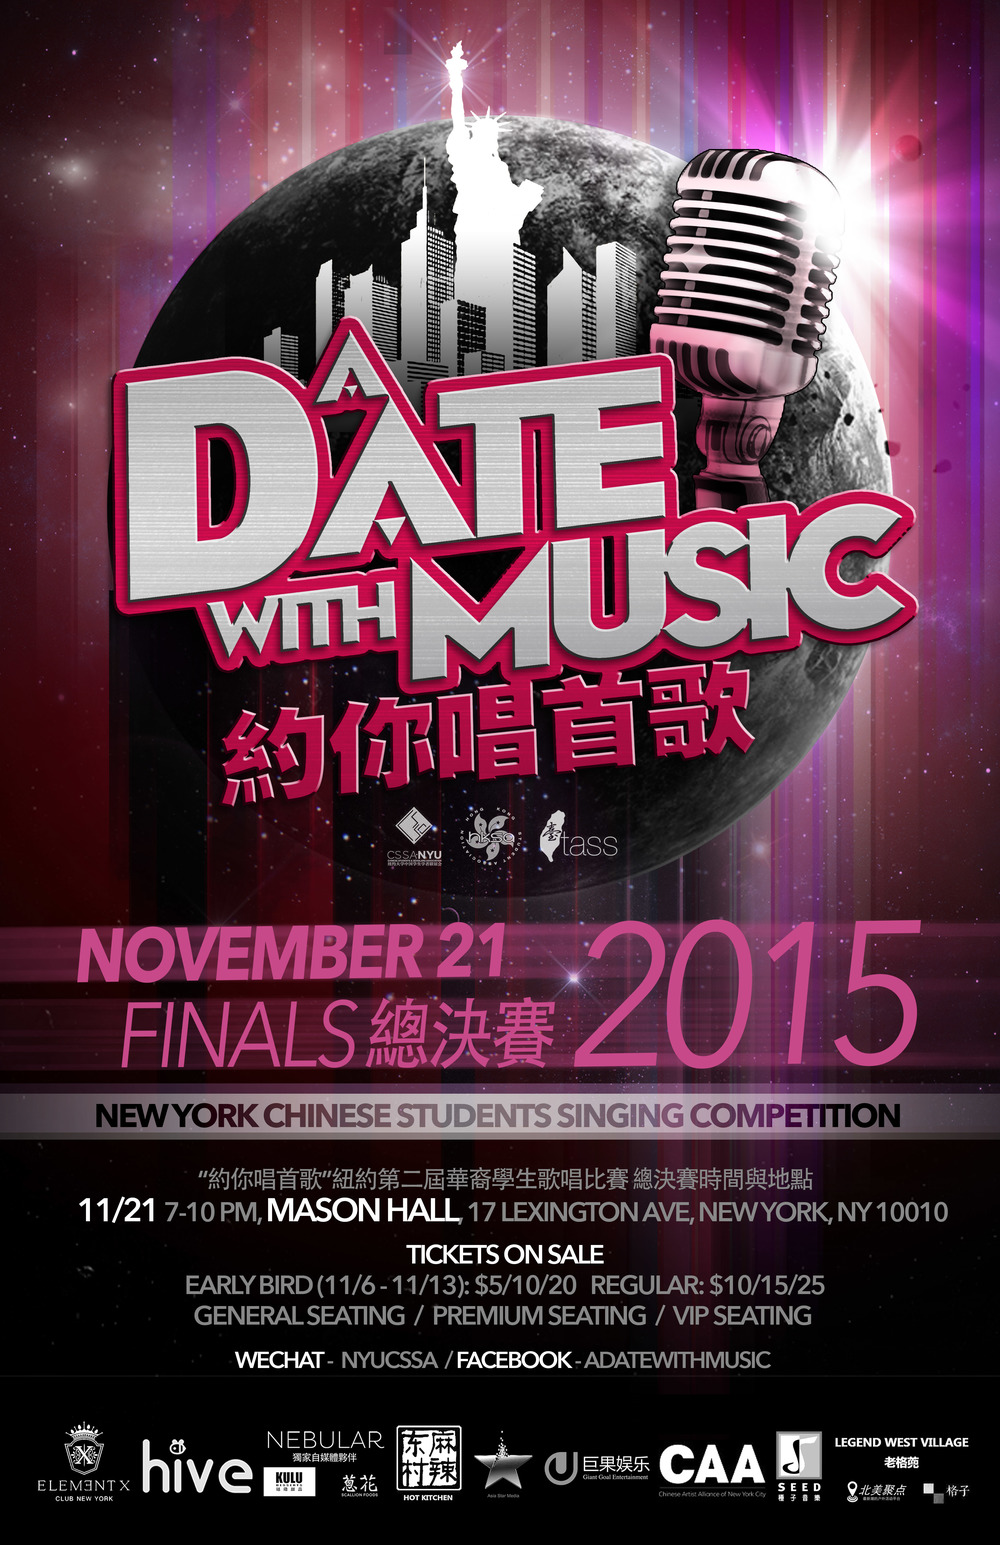 A Date with Music — Tiffany L. Chen